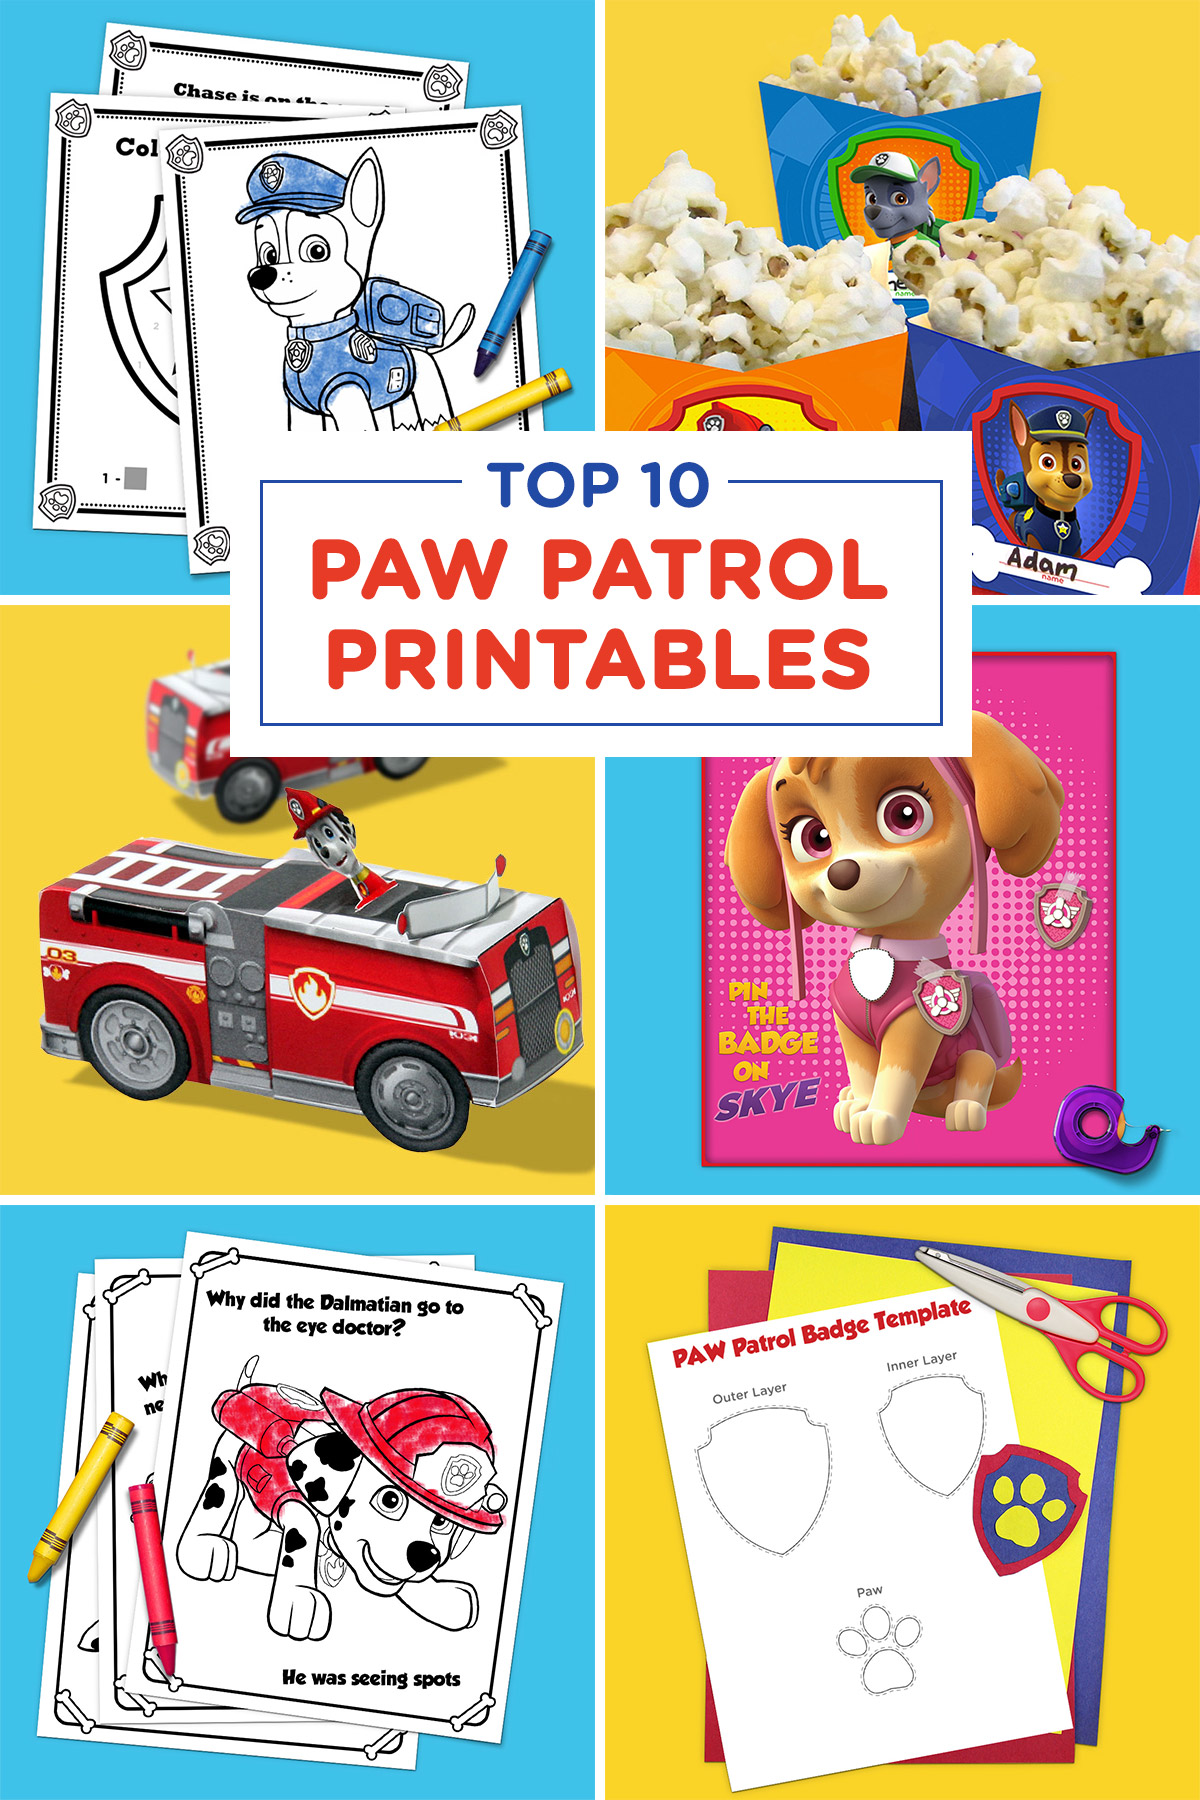 89f1e15d59c The Top 10 PAW Patrol Printables of All Time | Nickelodeon Parents